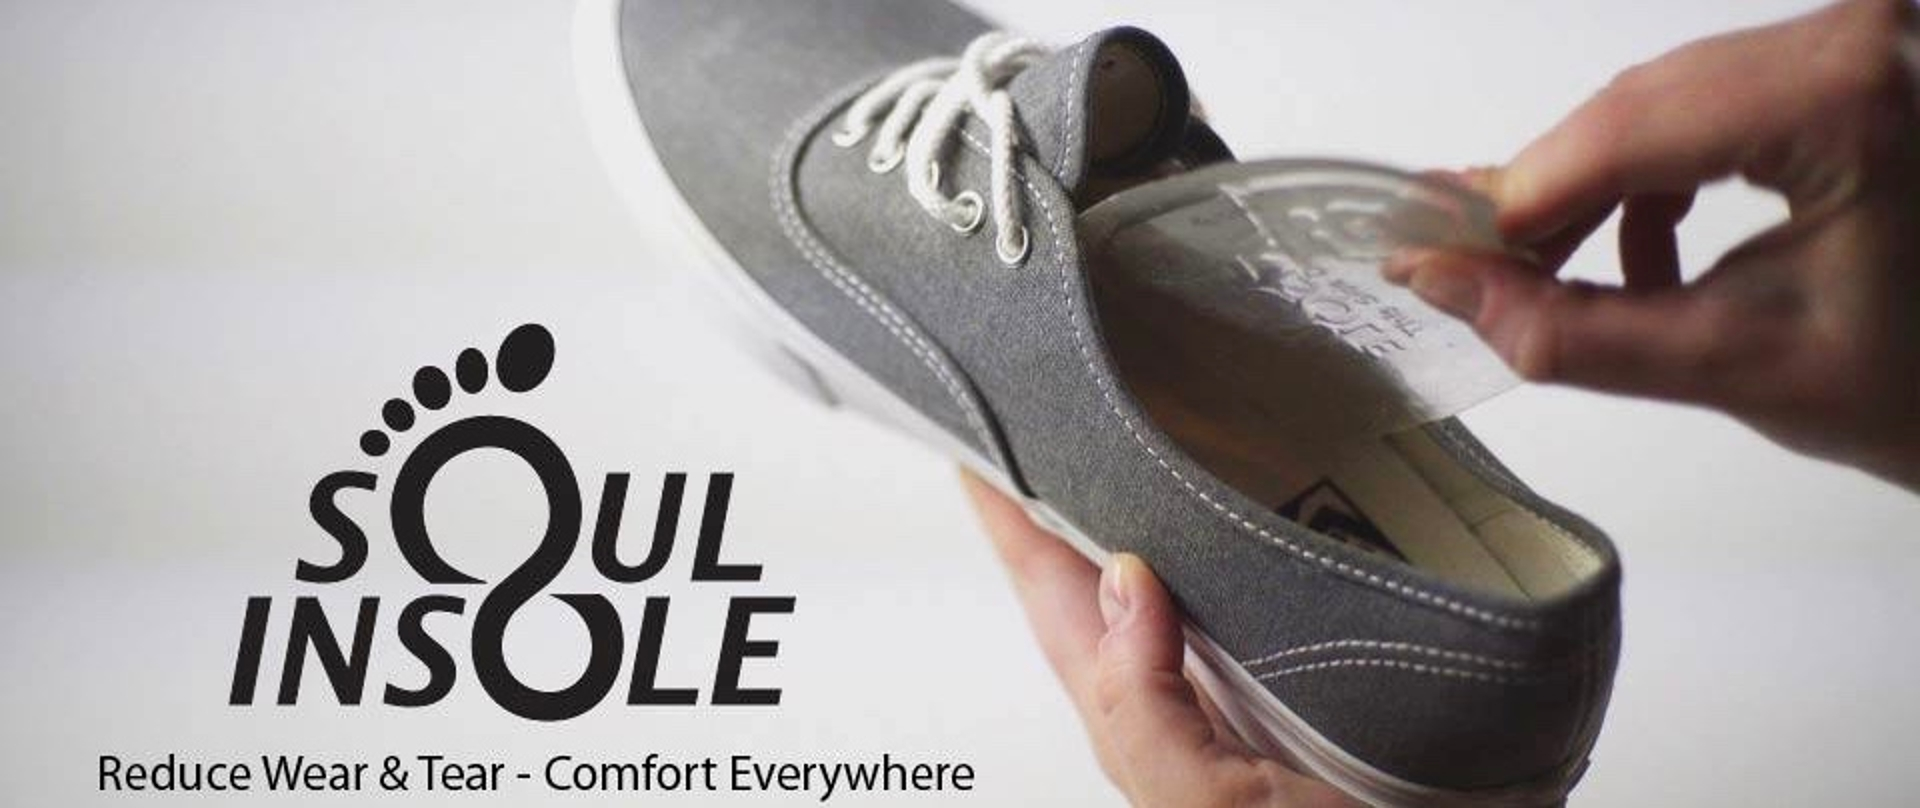 Hands inserting Soul Insole into gray shoe